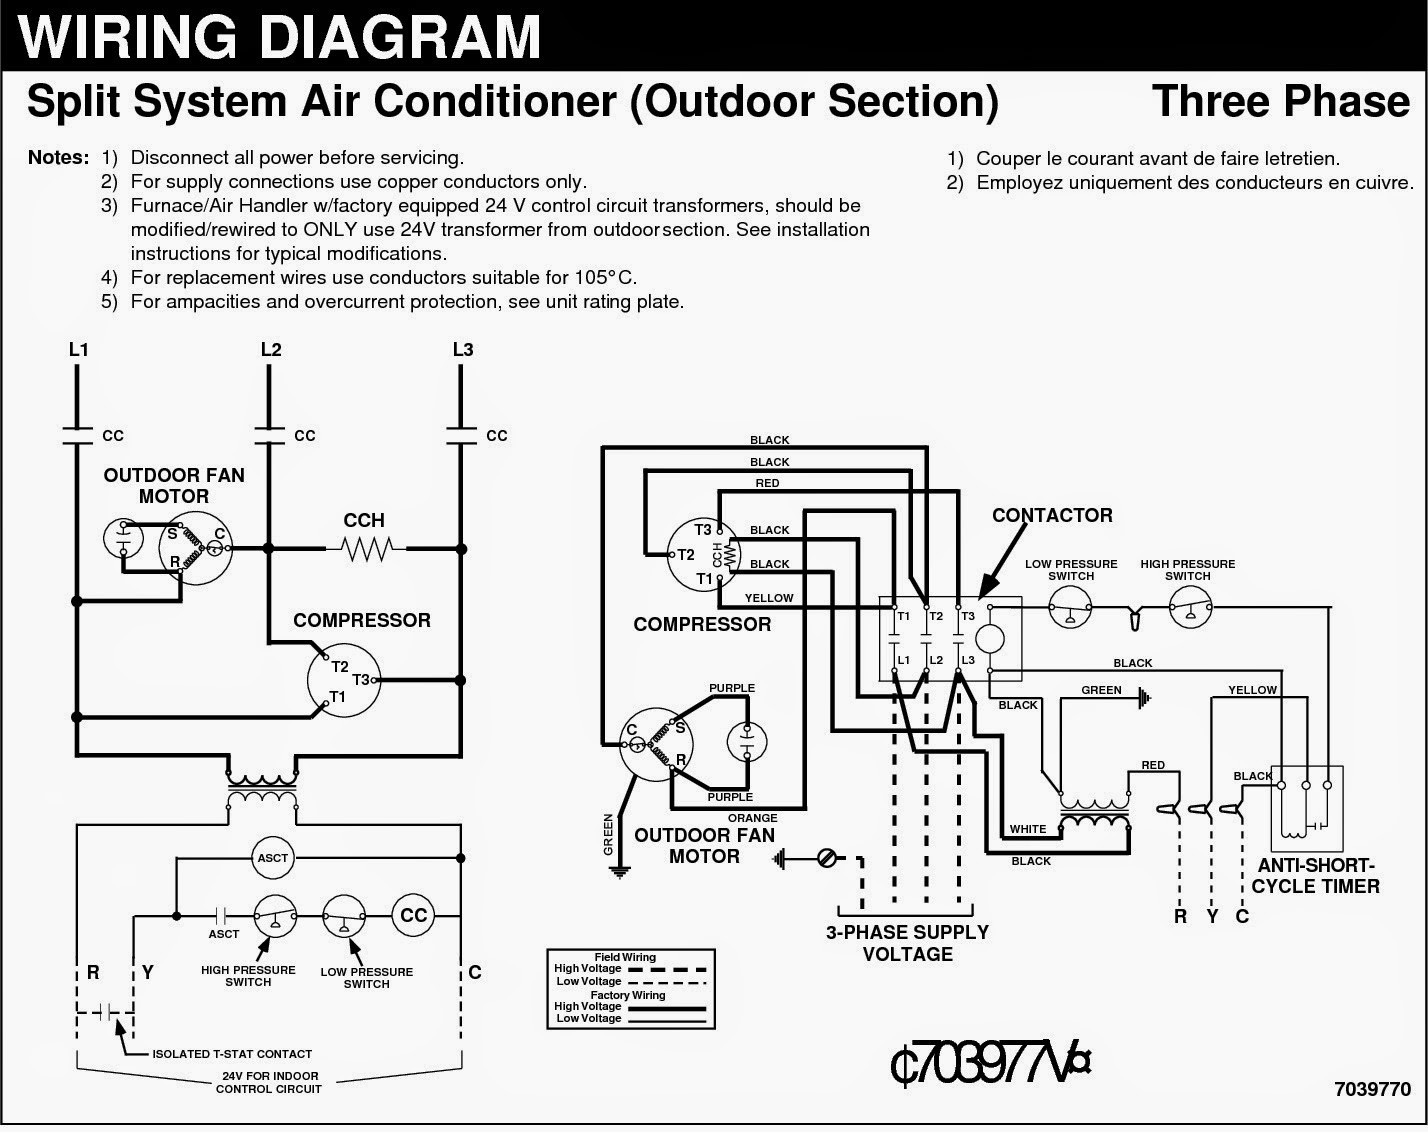 A C Wire Diagram Wiring Starter 1990 Eagle Talon Awd Hvac Compressor Diagrama Simple